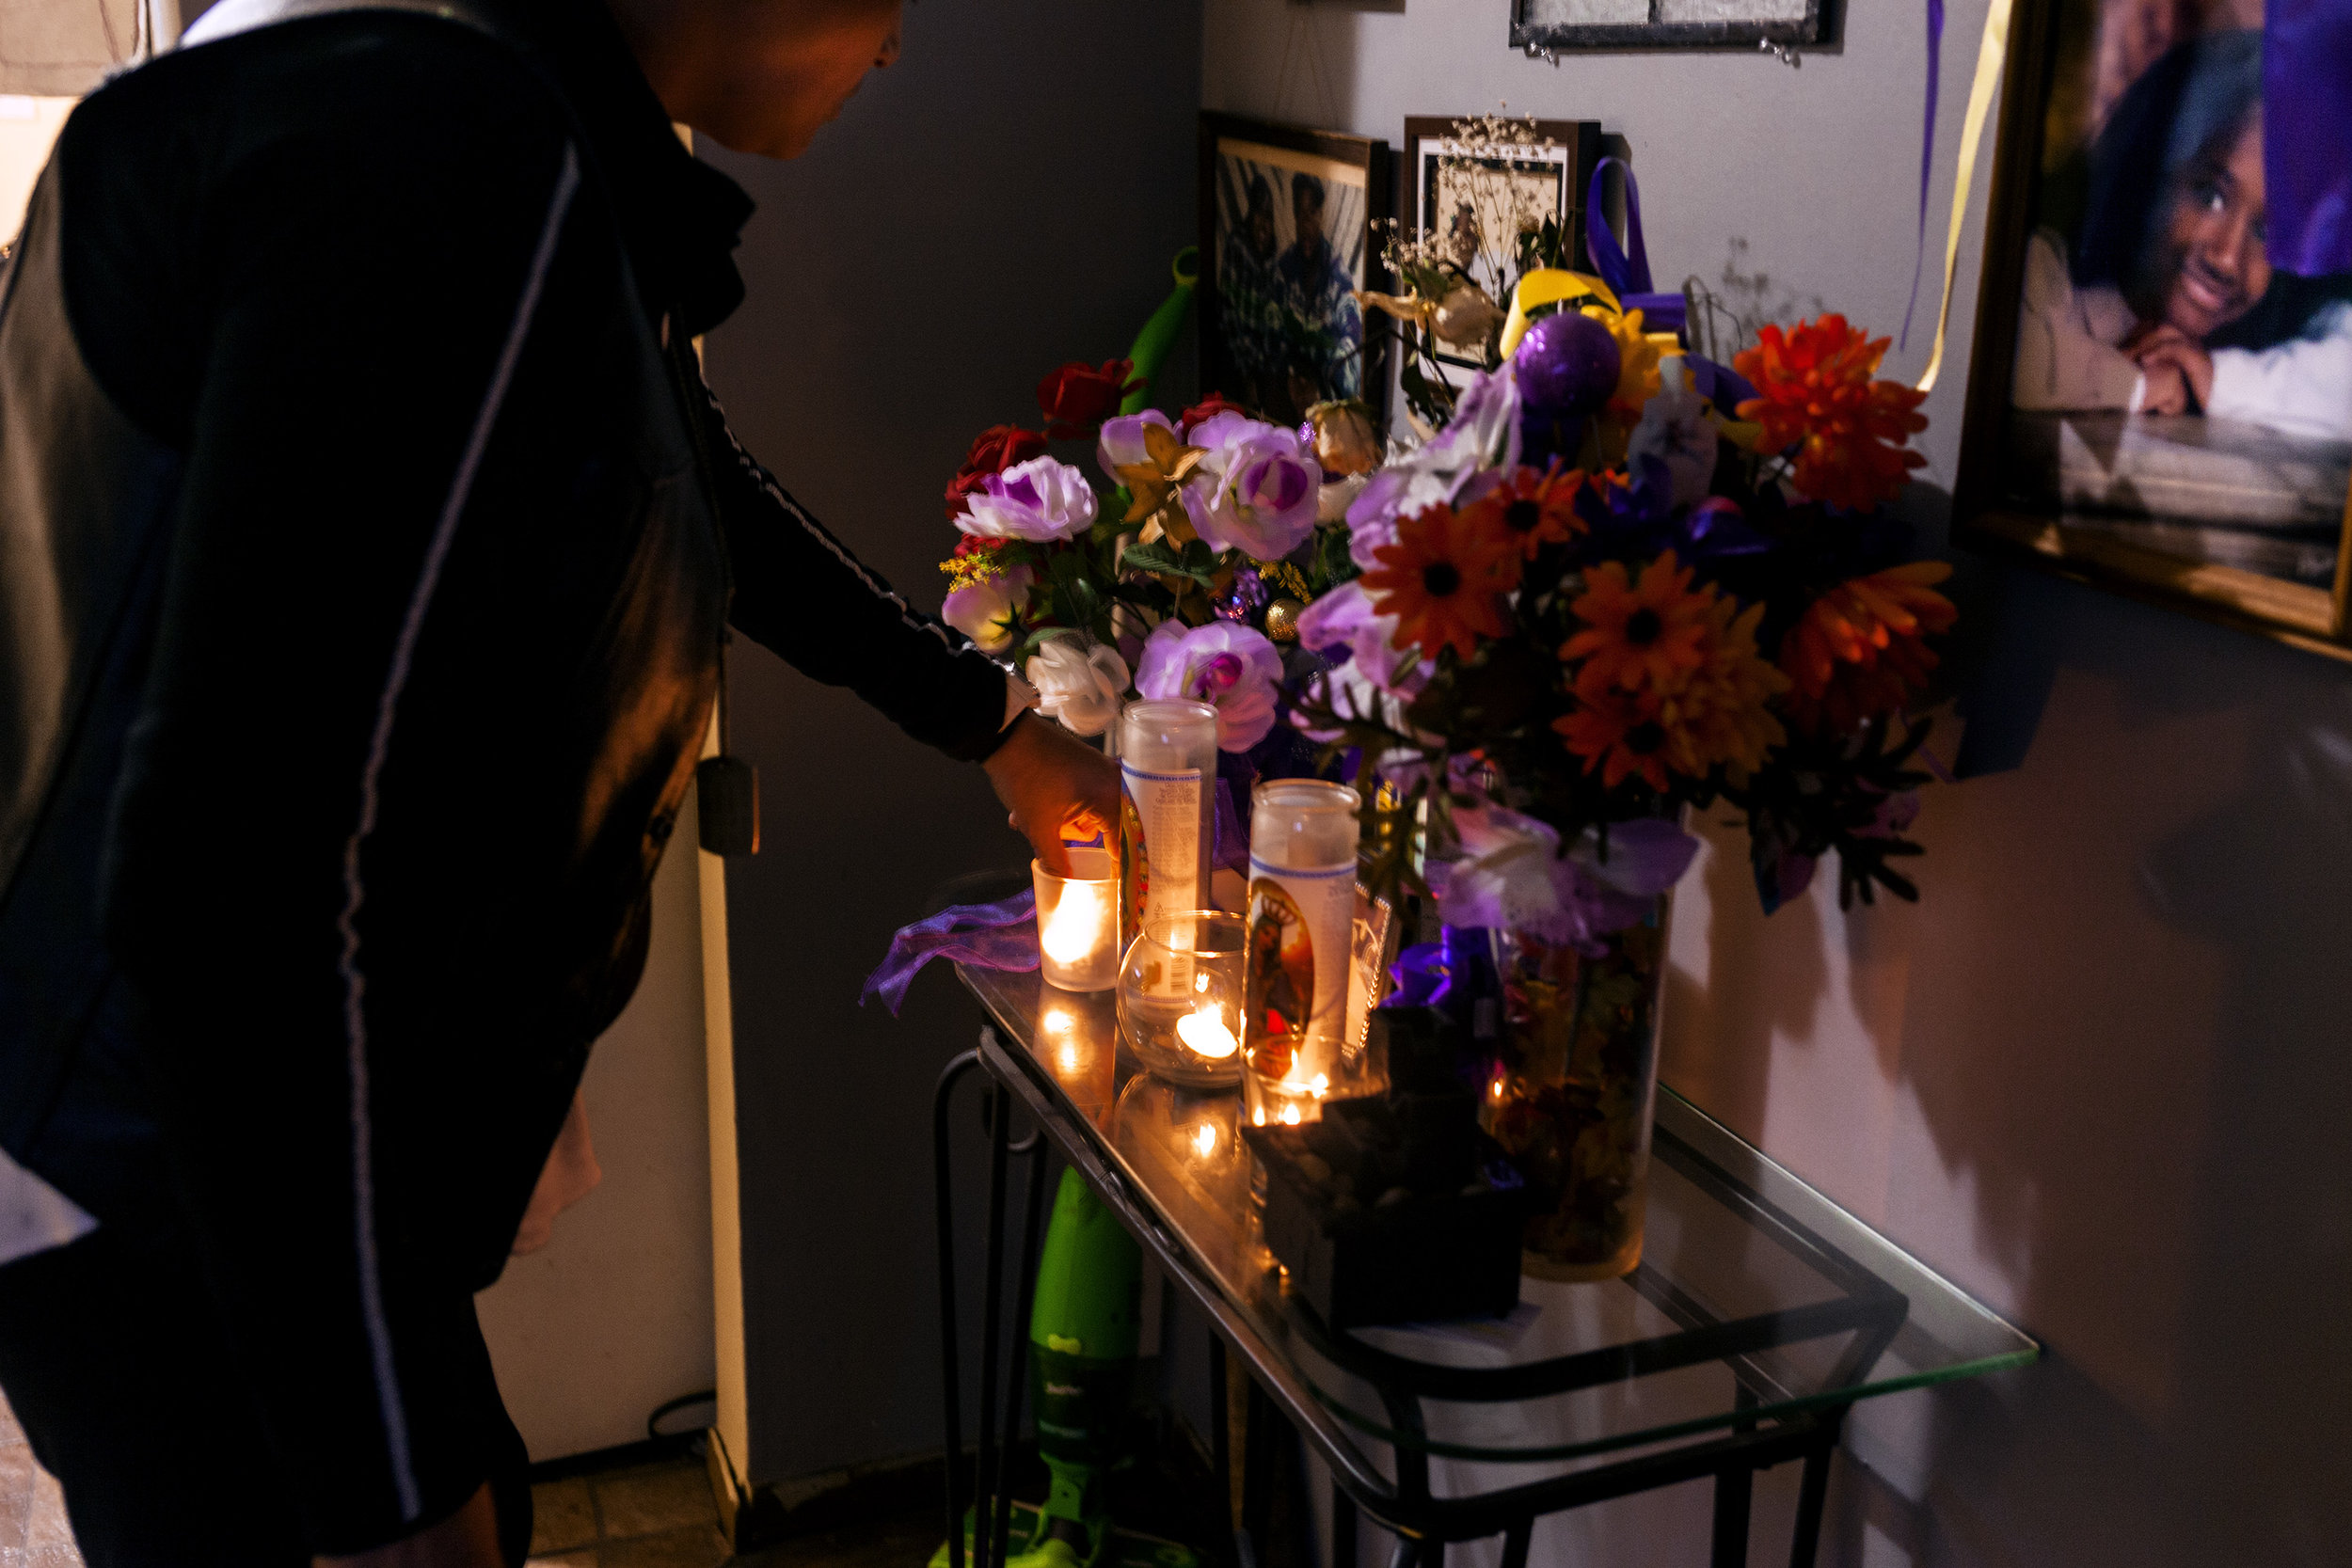 Elizabeth Alvarado, Nisa Micken's mother, lights a candle for Nisa's shrine in their Brentwood home.